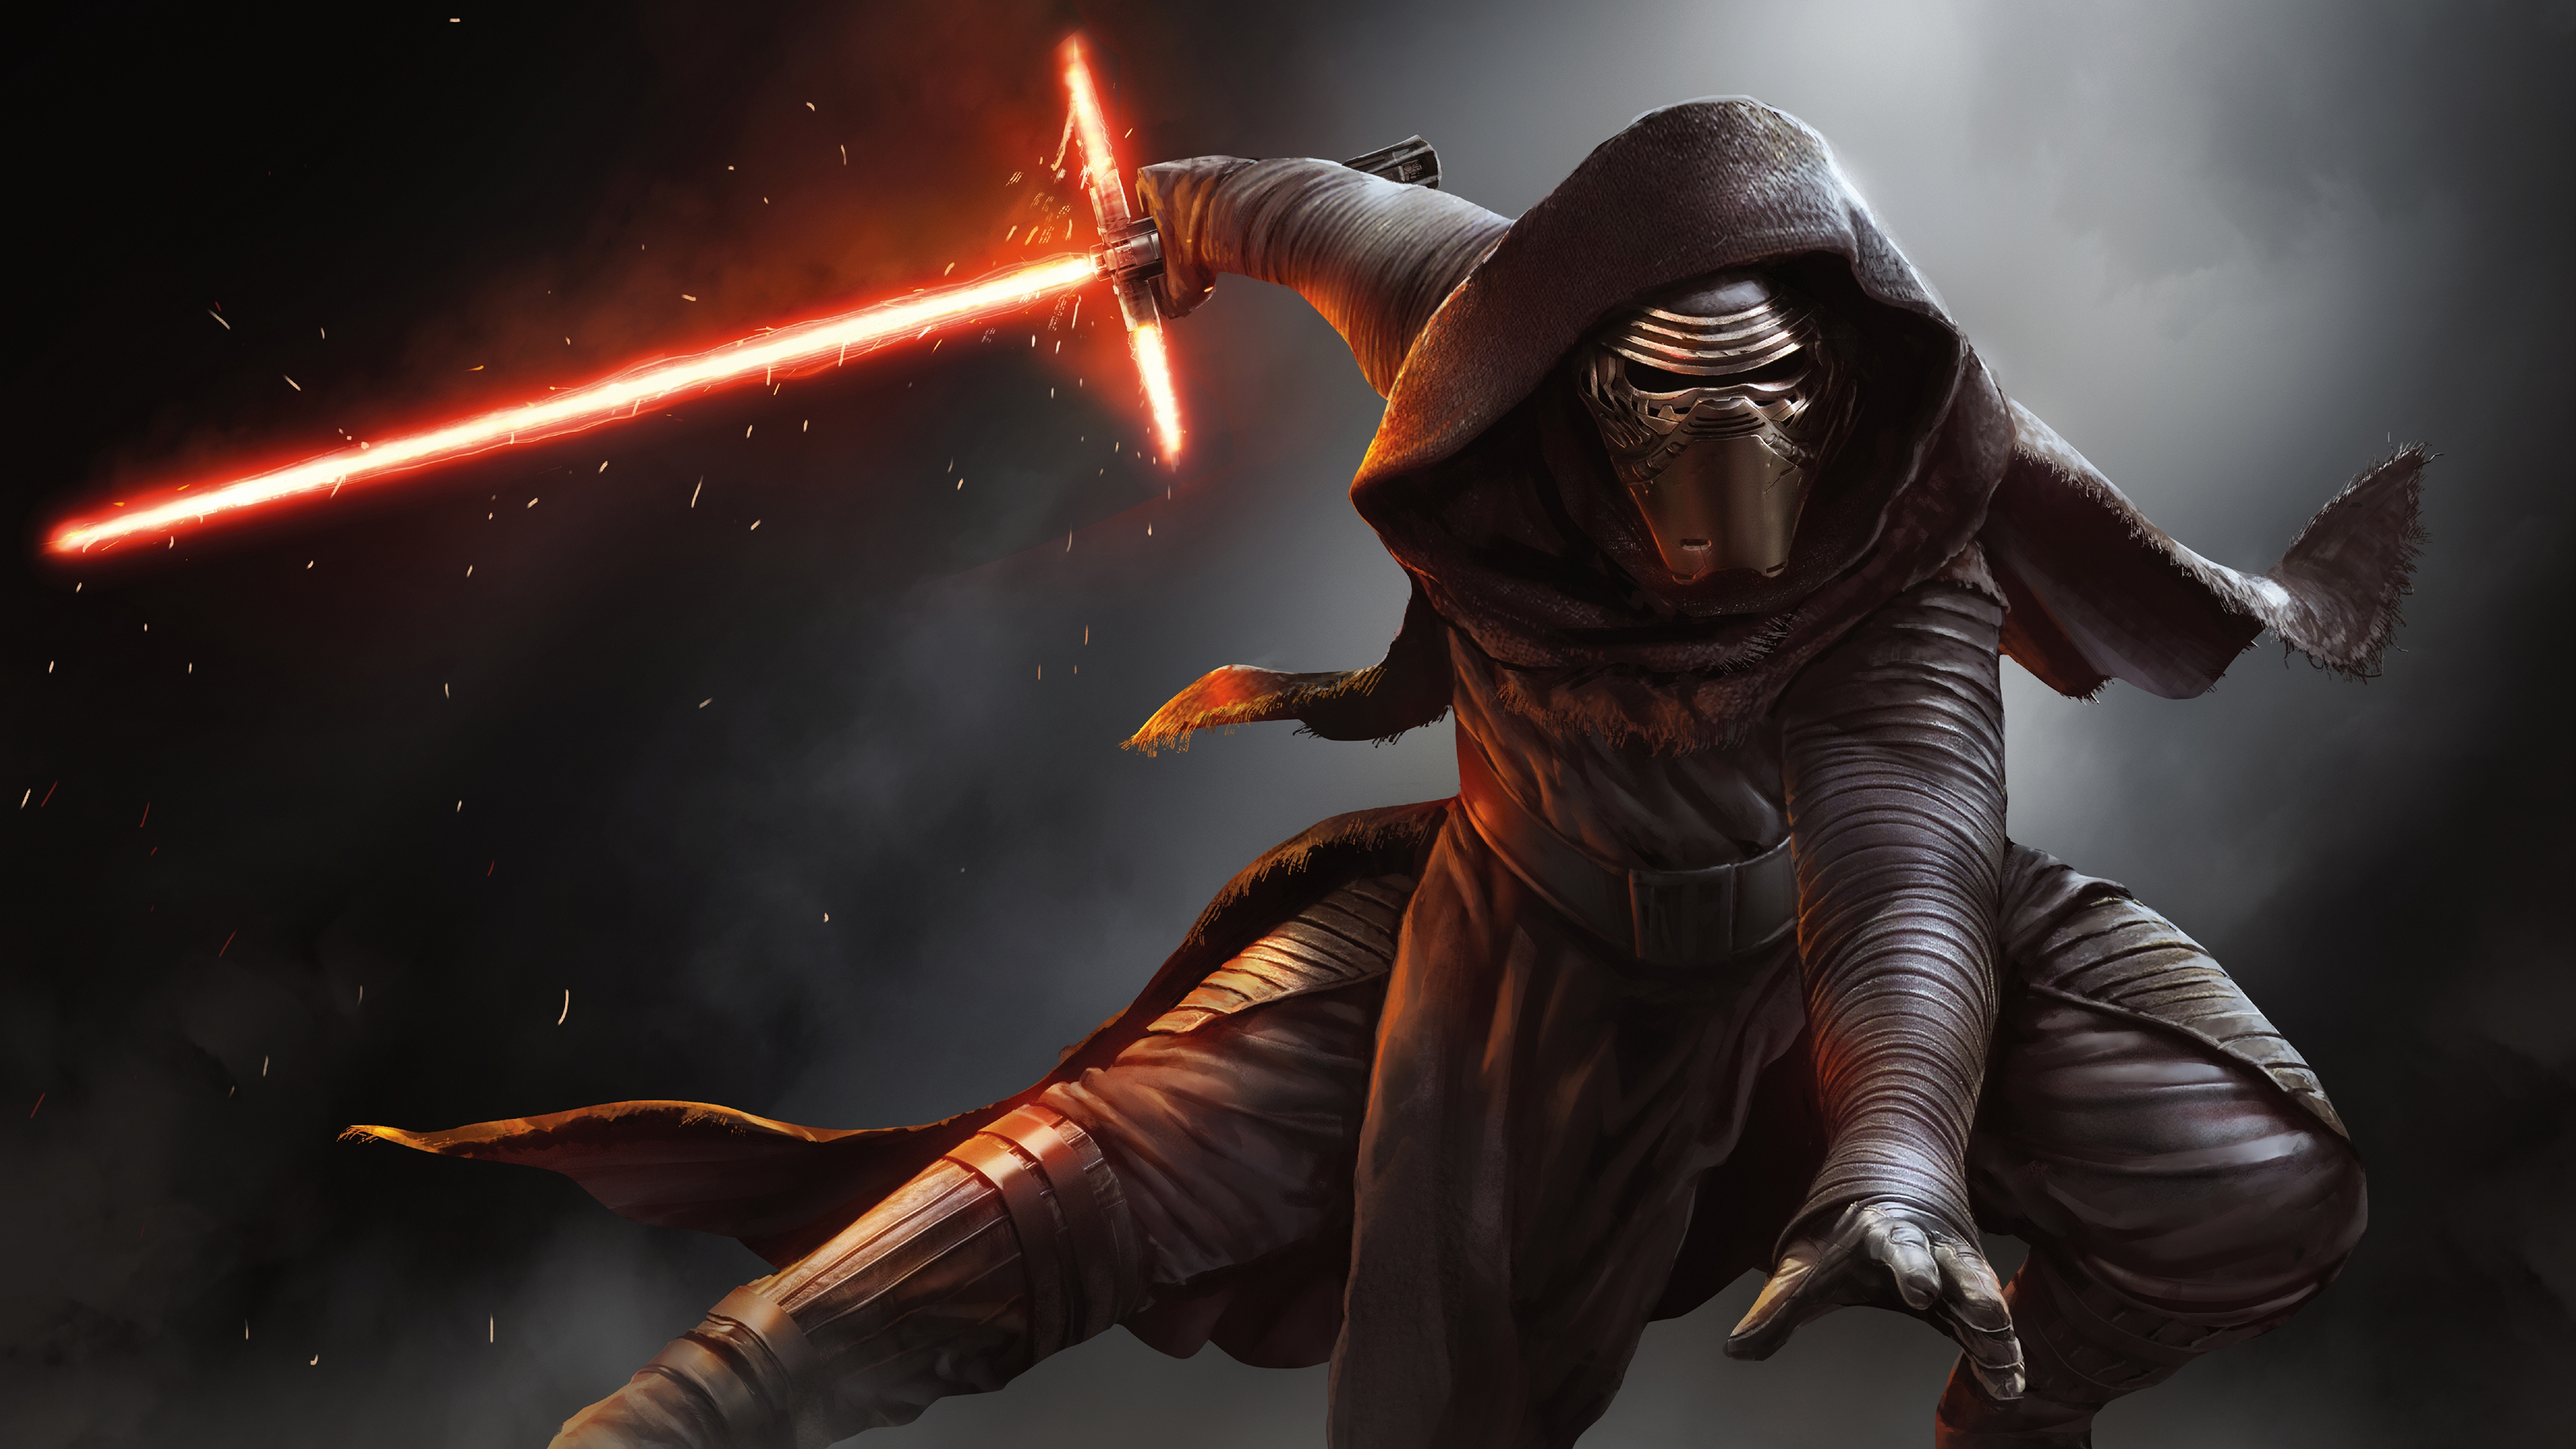 Star Wars Awesome Wallpapers